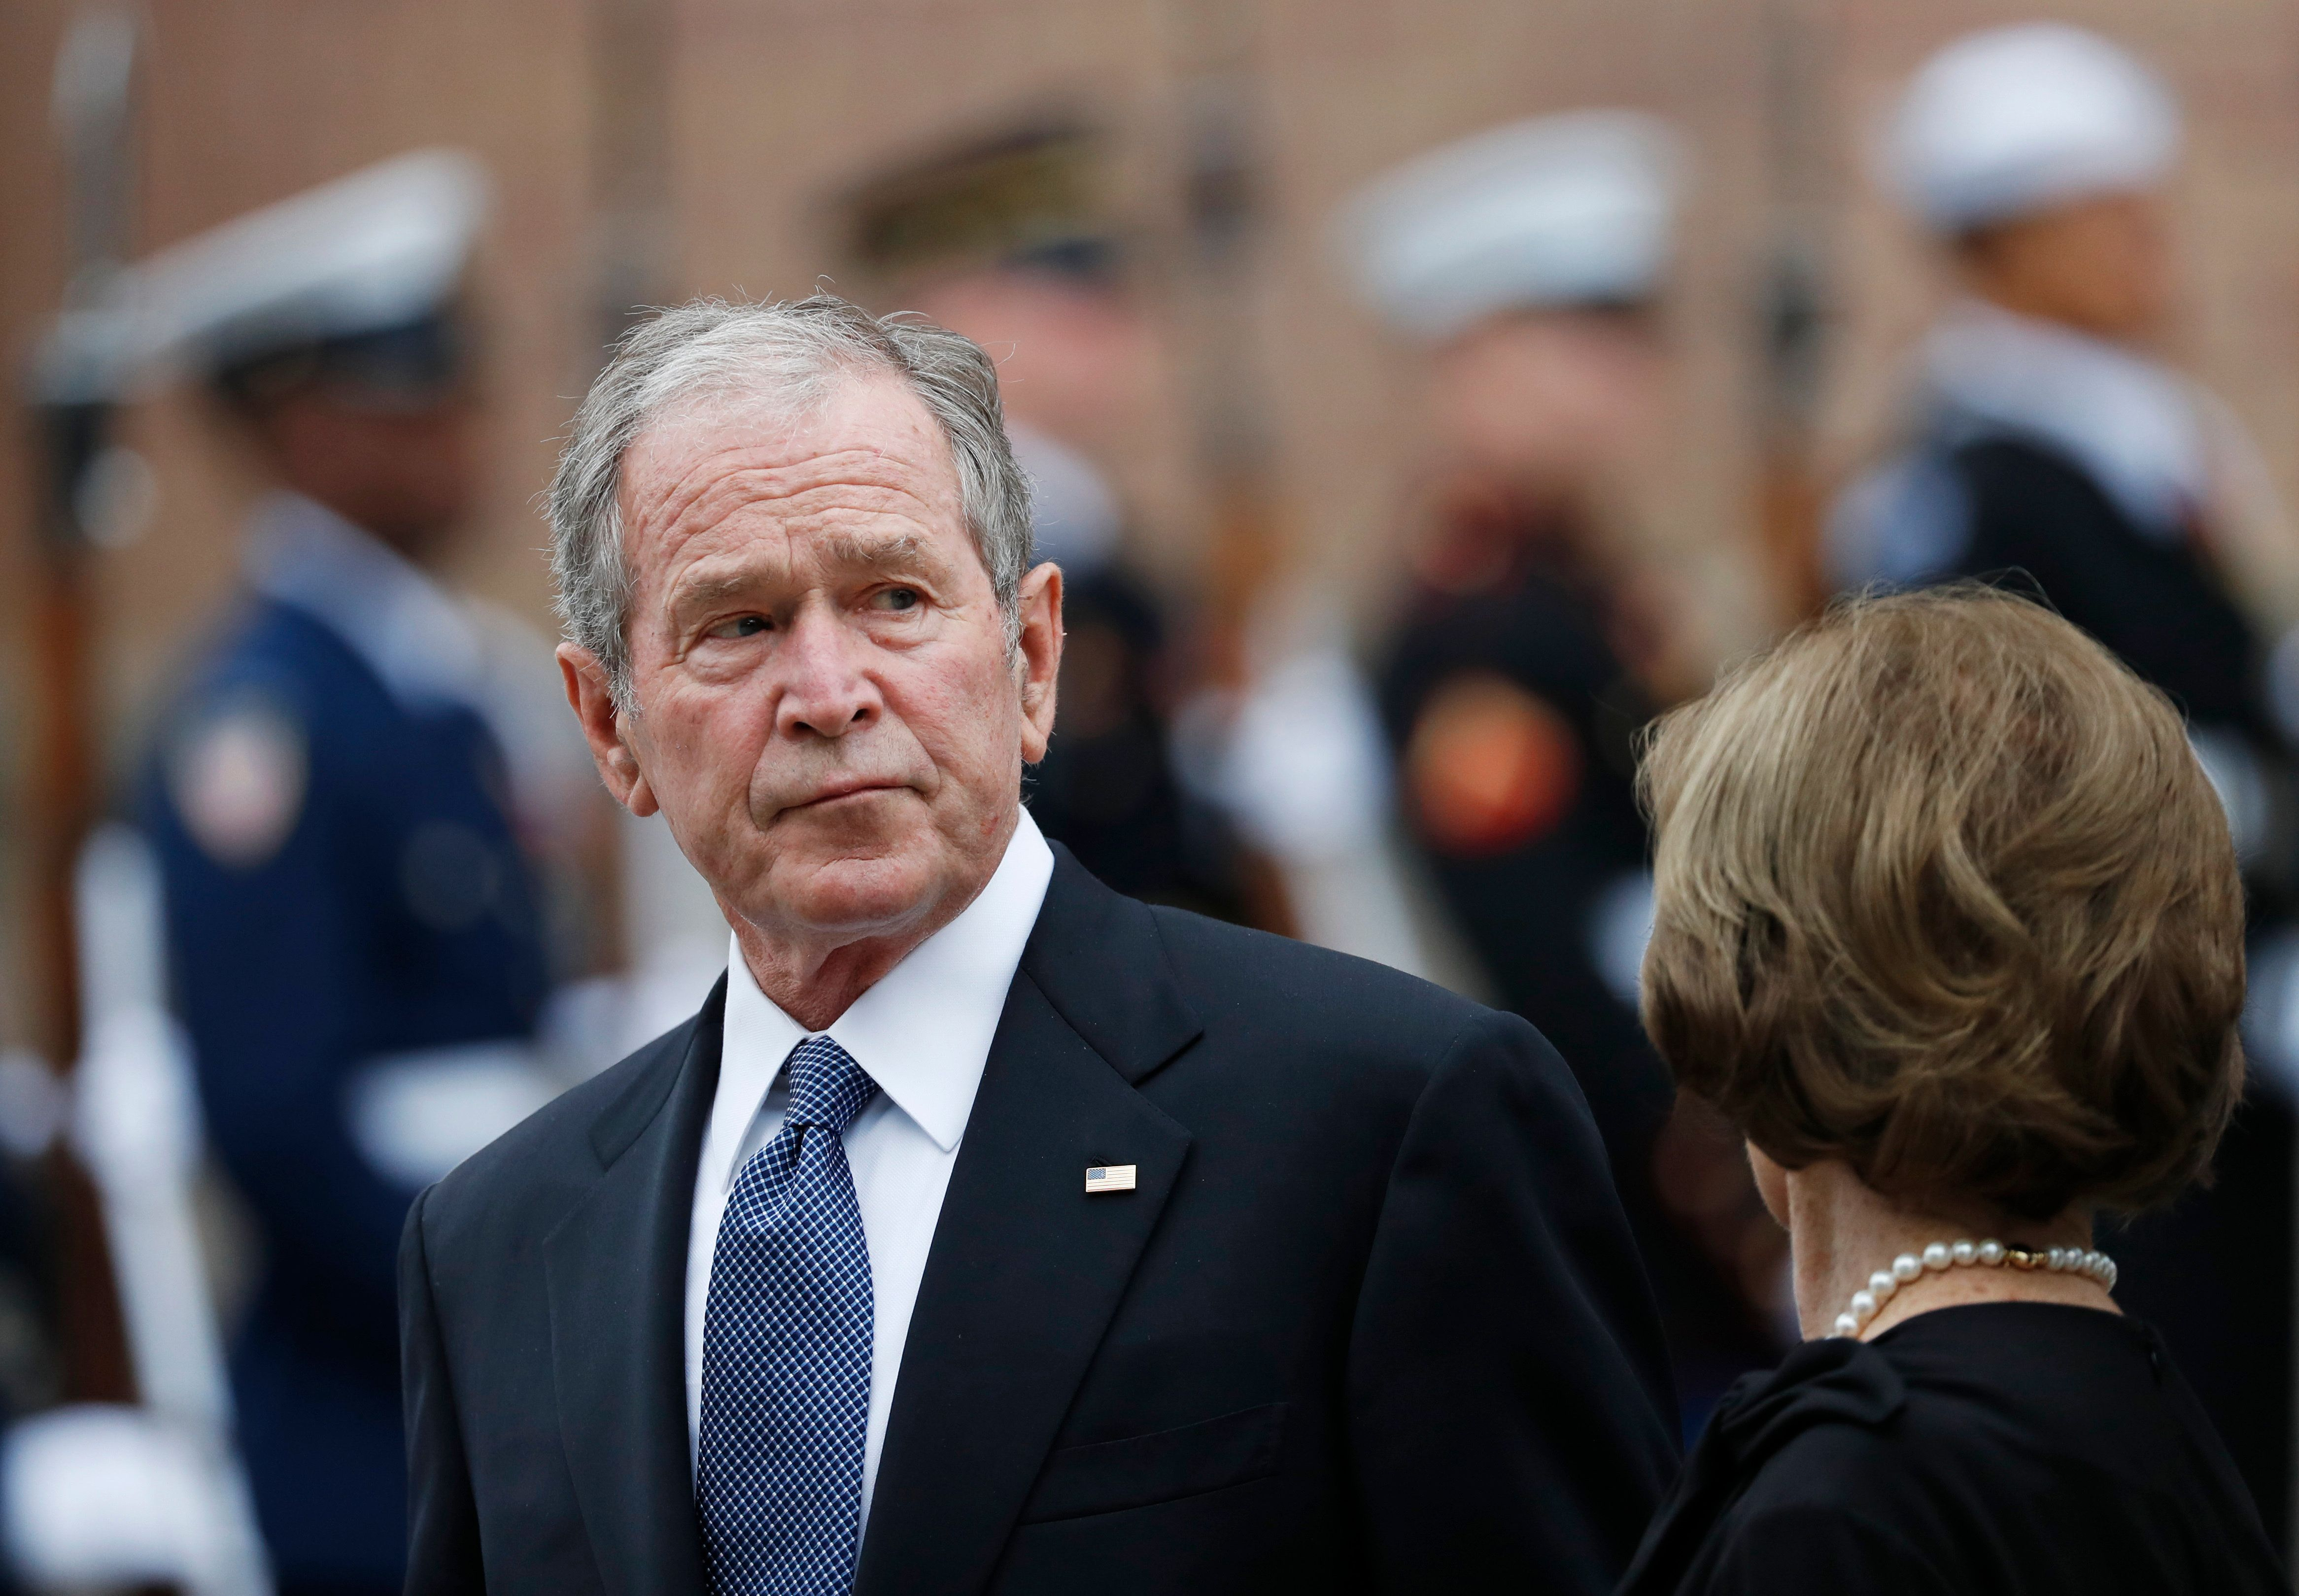 Former President George W. Bush and his wife, Laura Bush, leave St. Martin's Episcopal Church in Houston after the funeral service for his father, former President George H.W. Bush on Thursday, Dec. 6, 2018. (AP Photo/Gerald Herbert)